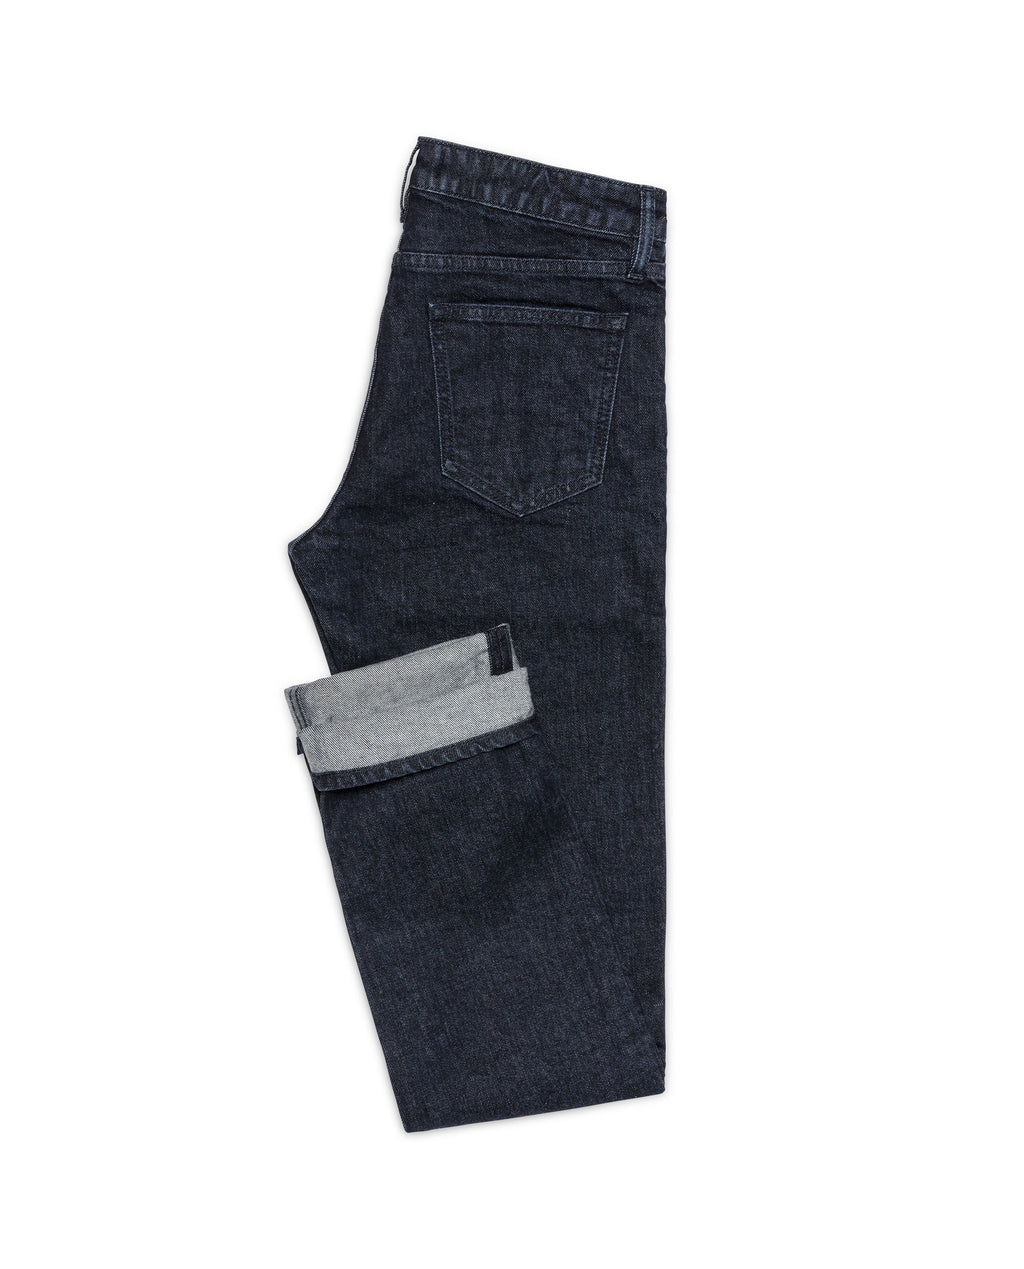 DEN002 Raw Selvedge denim 5 pocket, Made In Italy